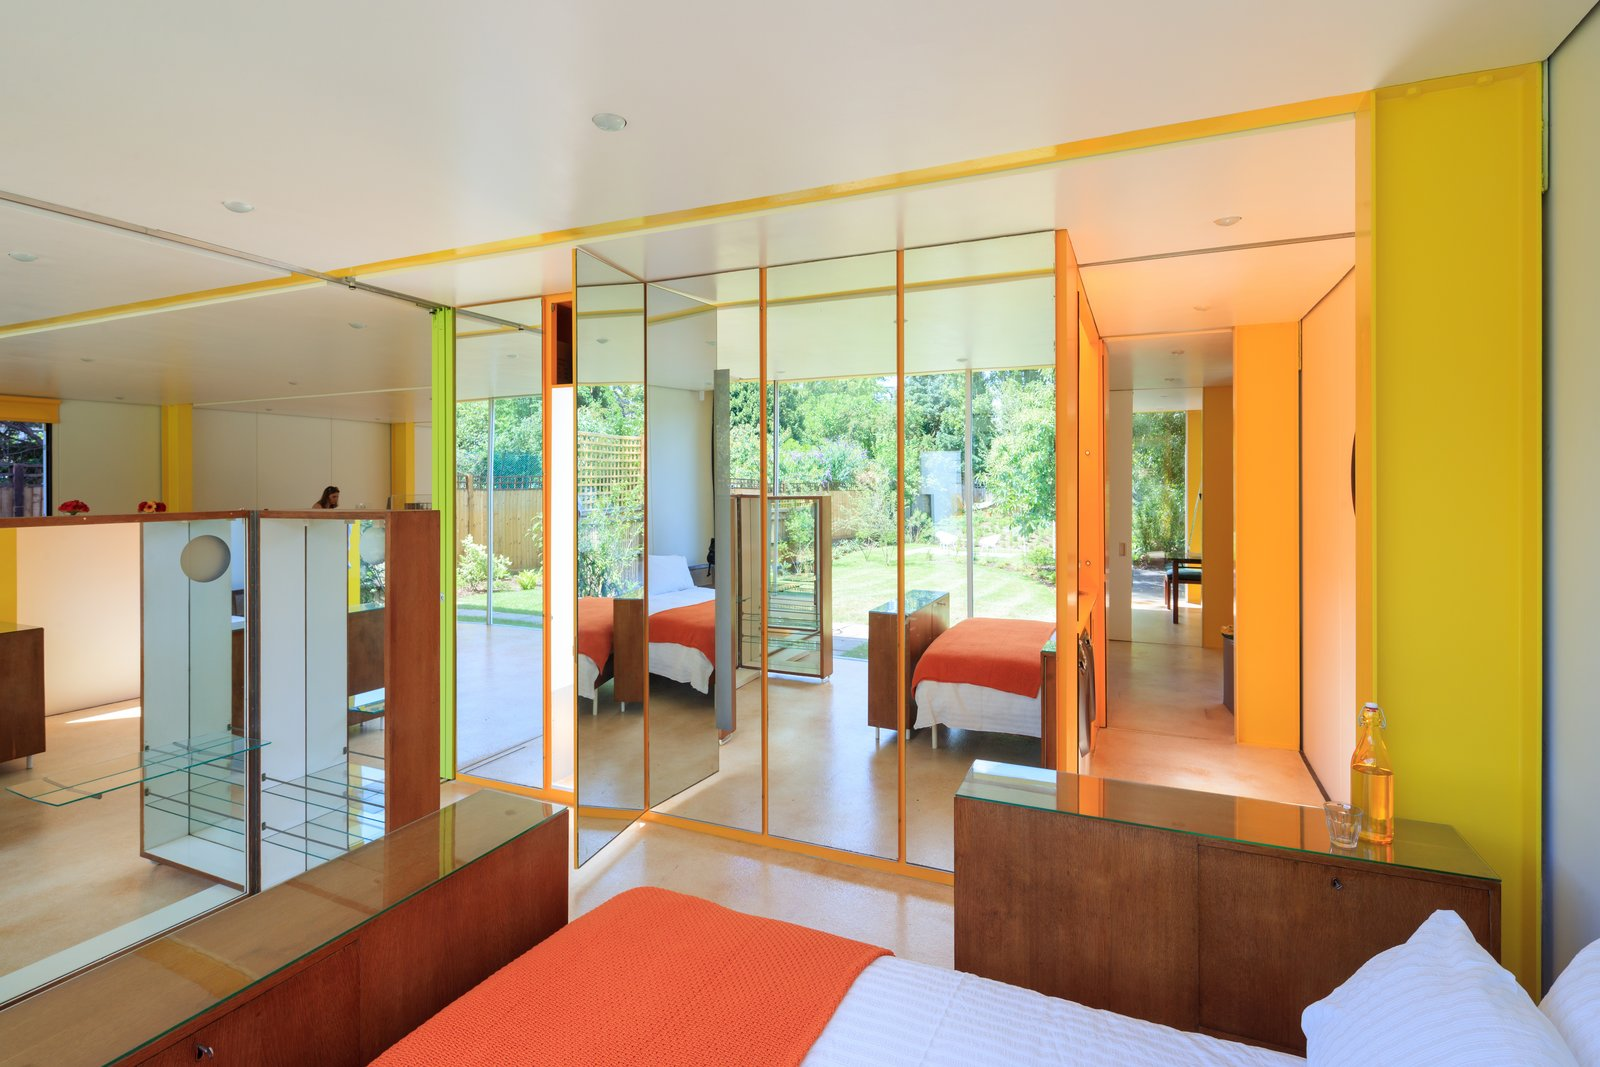 Bedroom and Bed  Photo 2 of 14 in Fully Renovated, Wimbledon House by Richard Rogers Hosts New Architecture Fellows in London